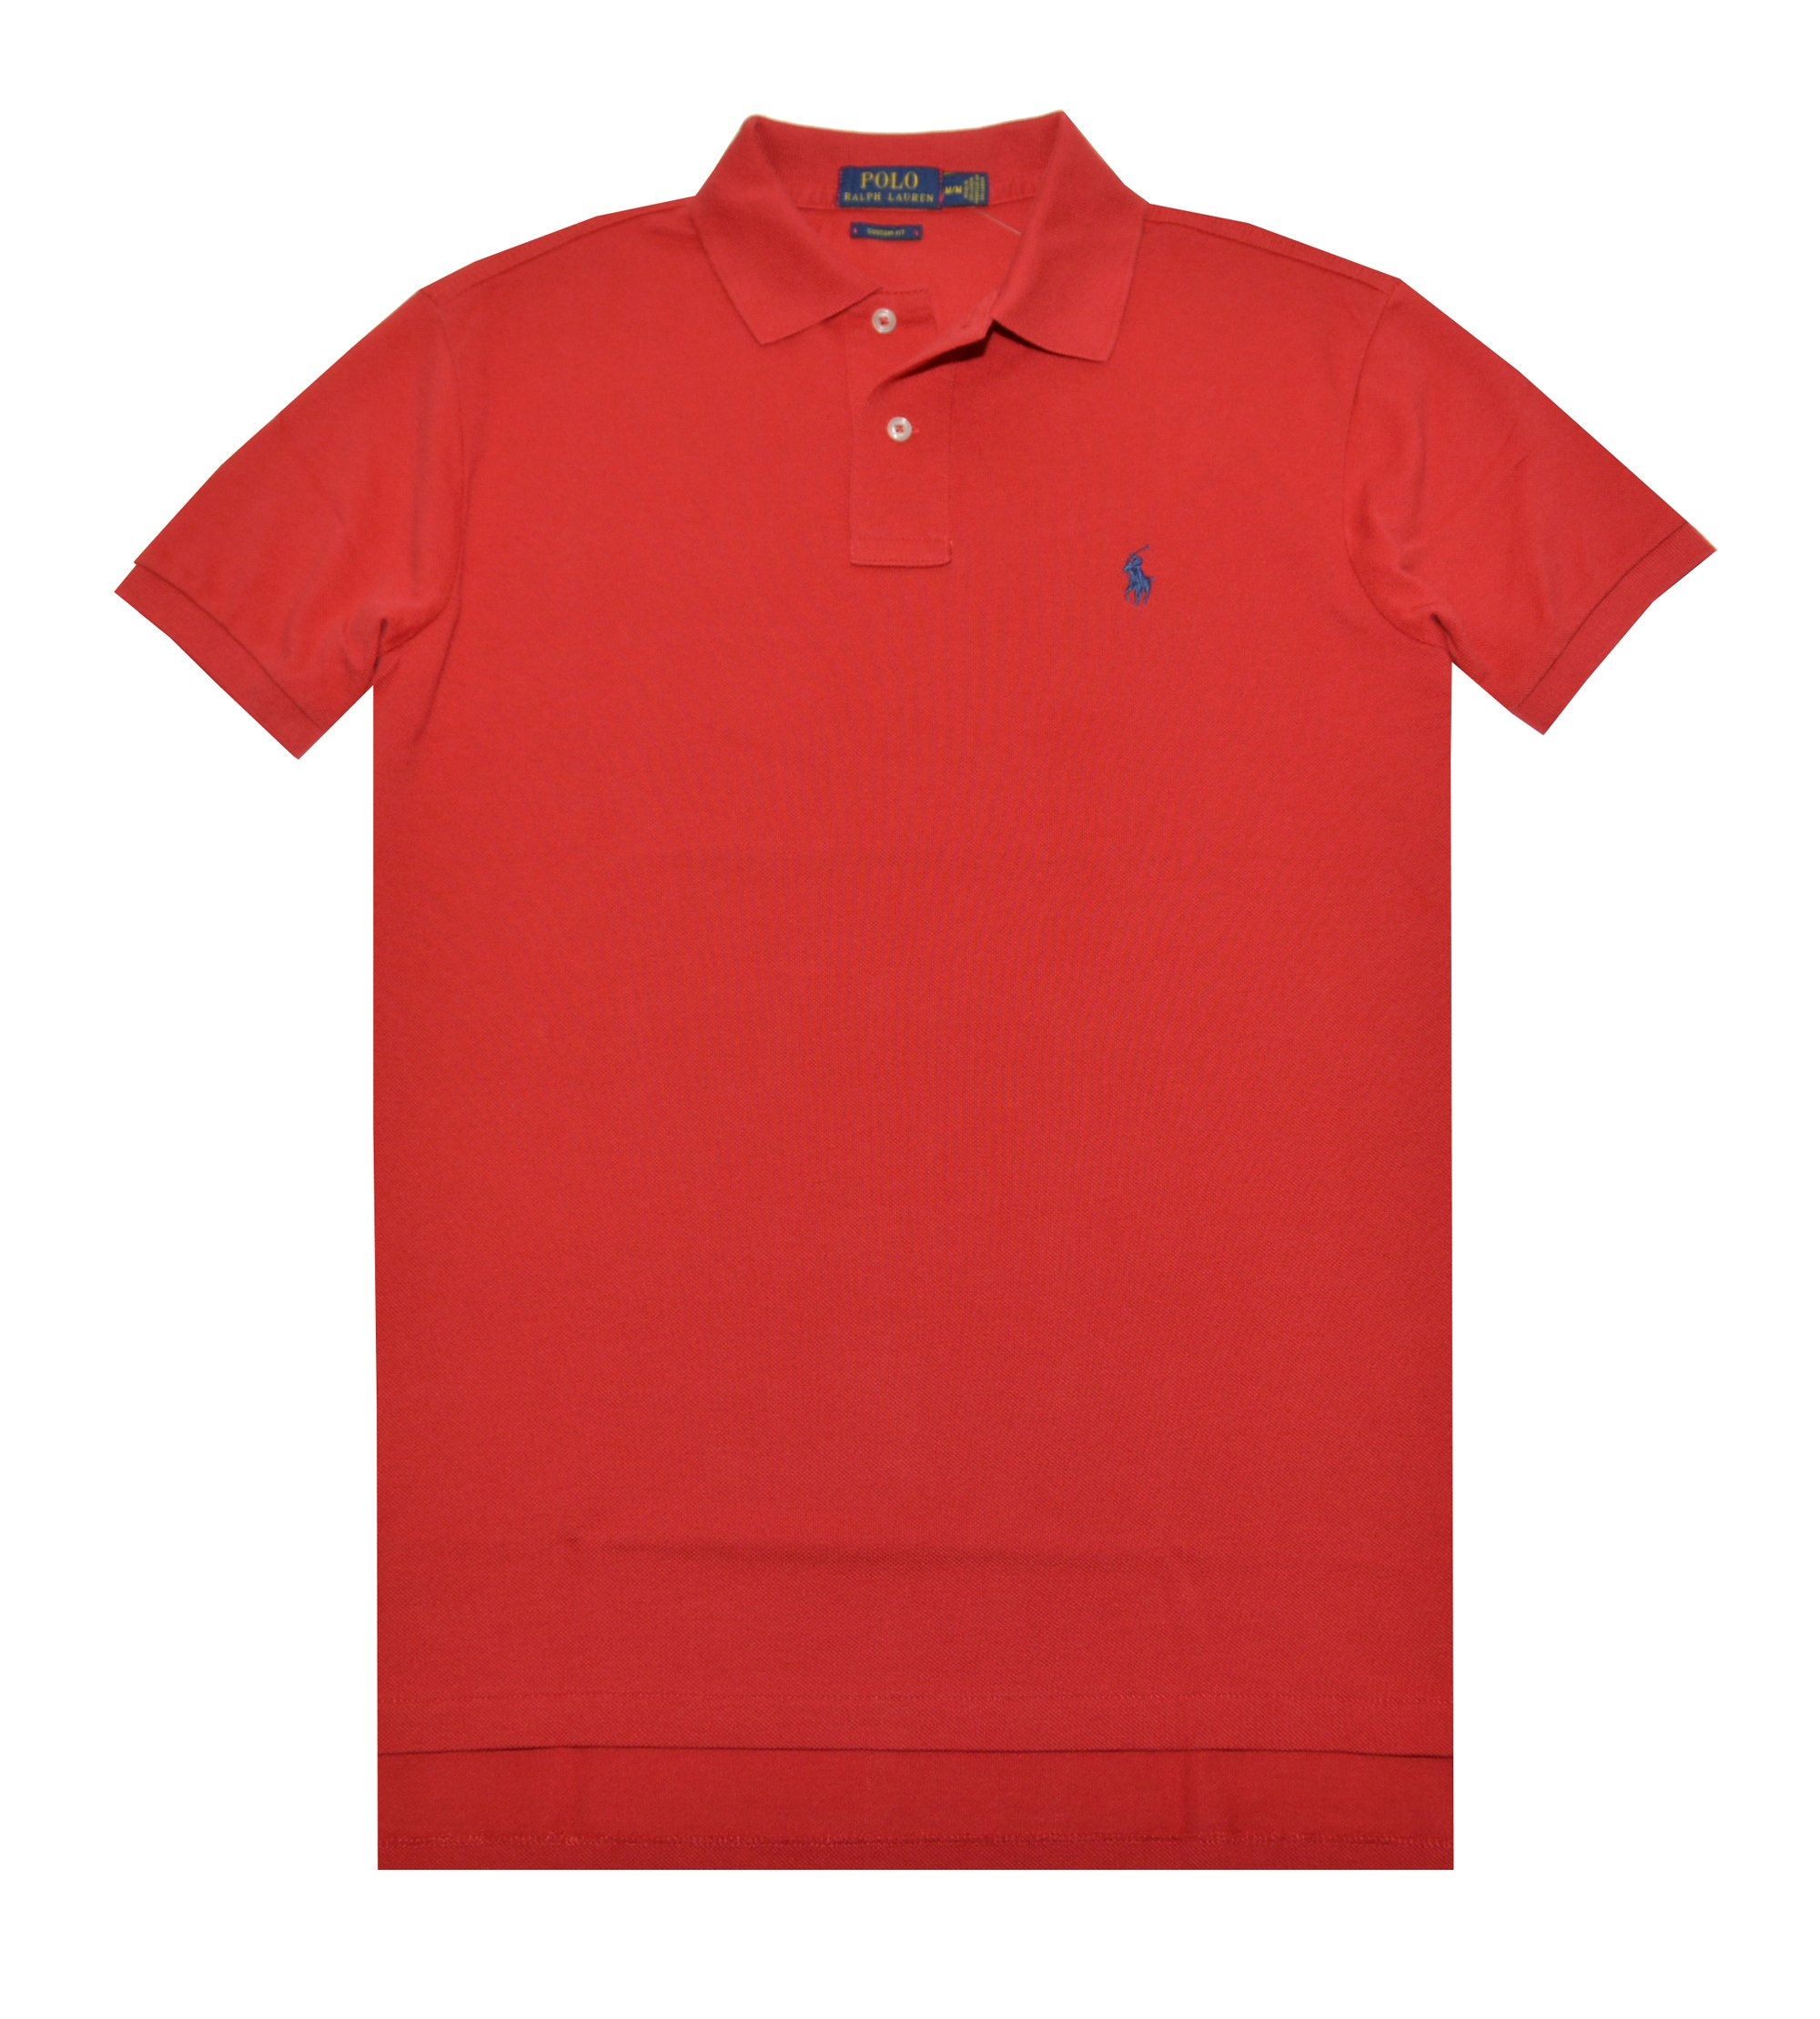 Polo Ralph Lauren Men Classic Fit Mesh Polo Shirt (X-Small, RL 2000 Red)